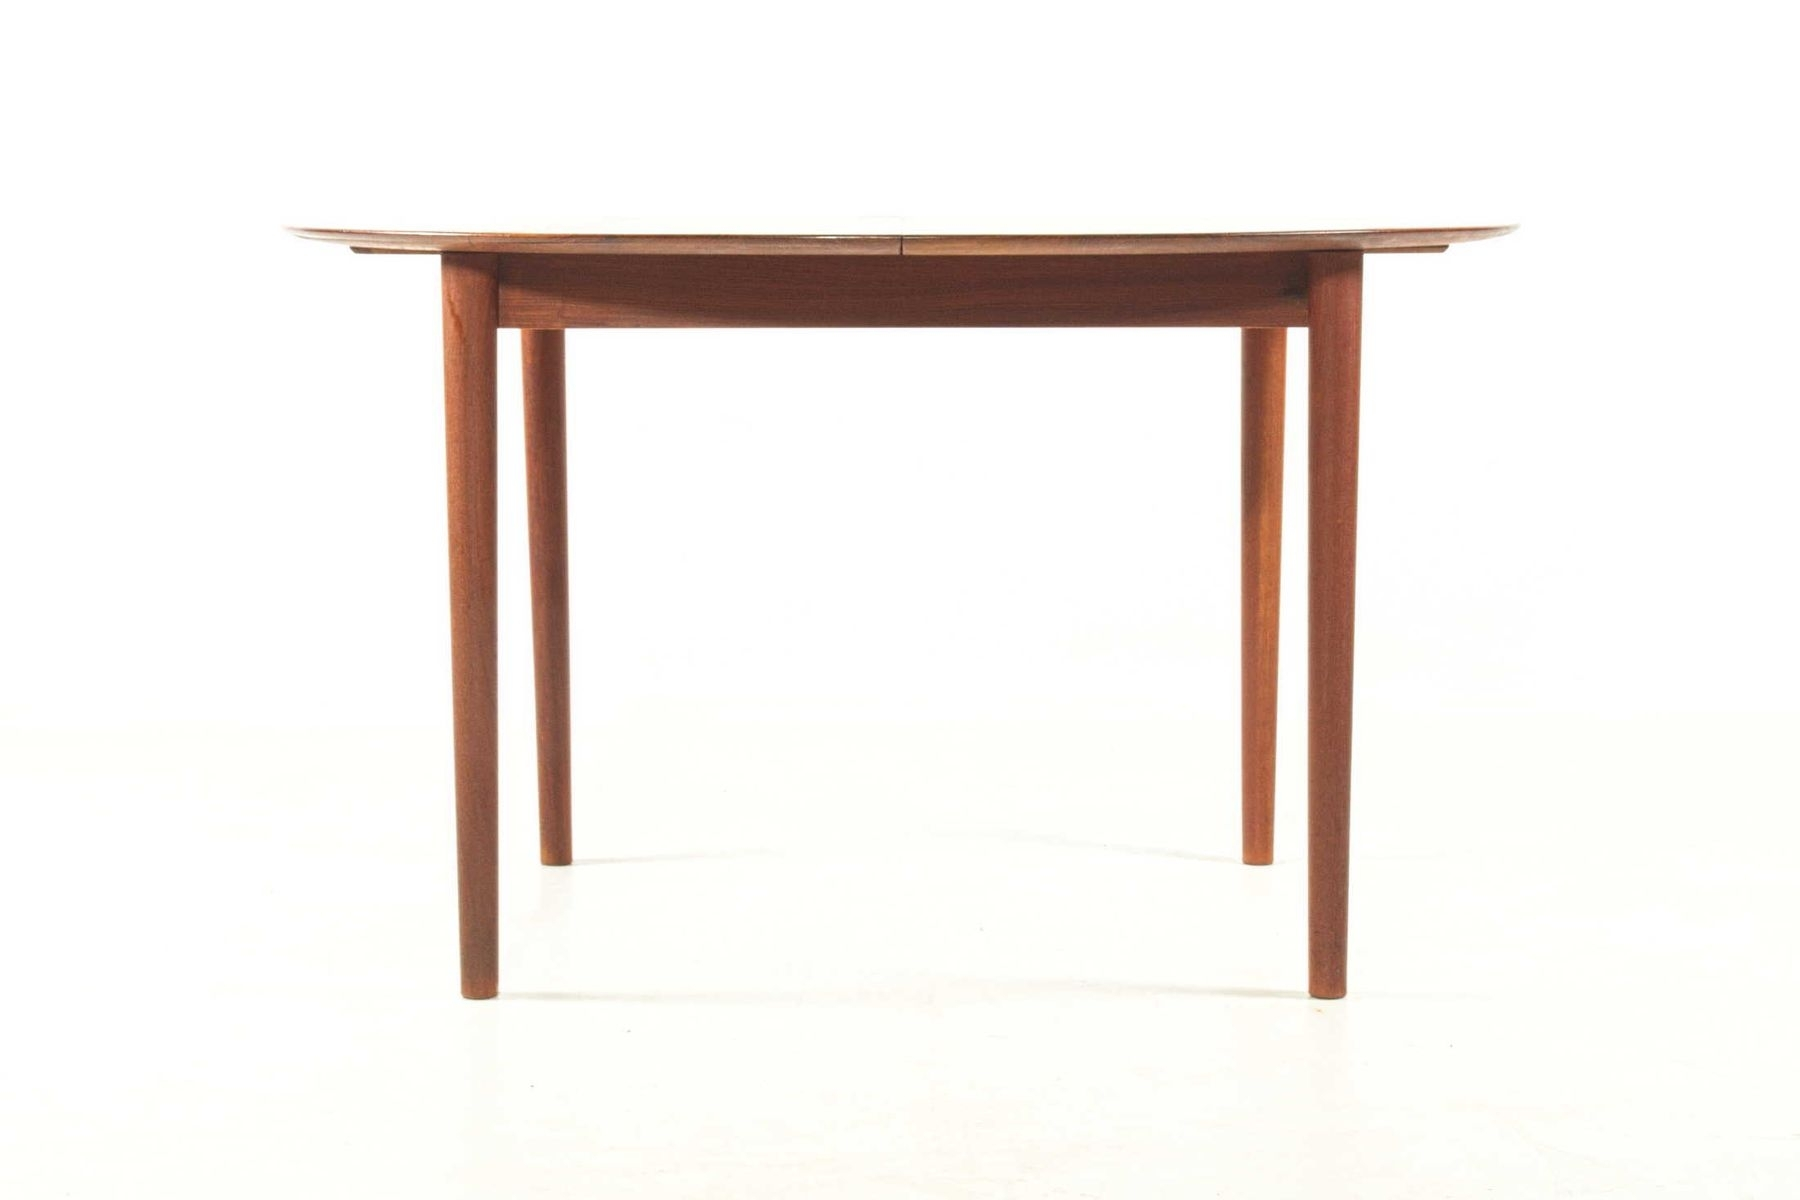 Extendable Dining Tablepeter Hvidt For Søborg Møbelfabrik, 1950S Regarding 2018 Lassen Extension Rectangle Dining Tables (View 20 of 20)